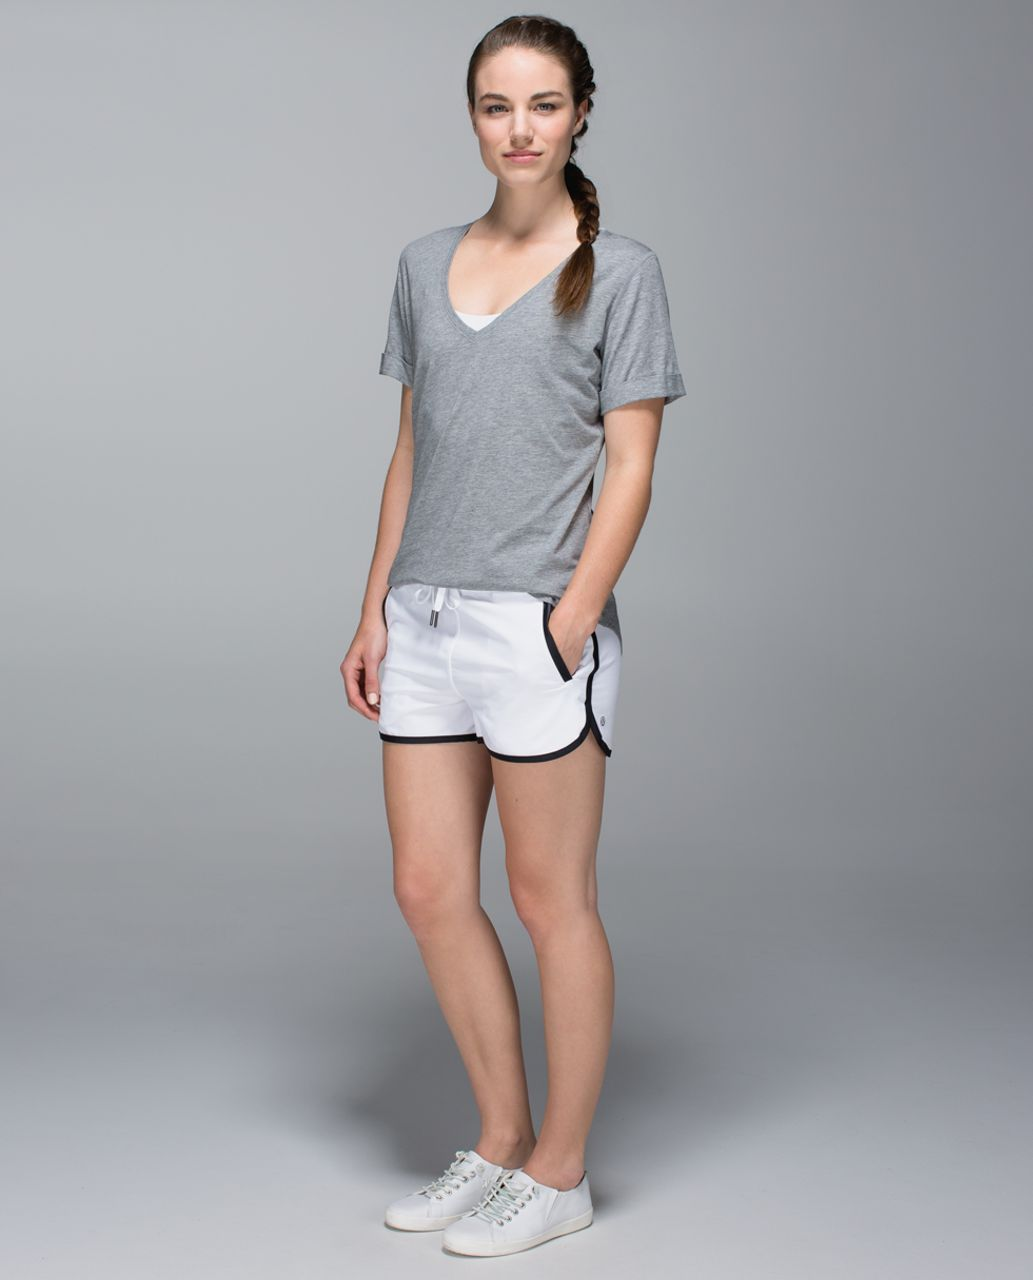 Lululemon Love Tee - Heathered Medium Grey (First Release)